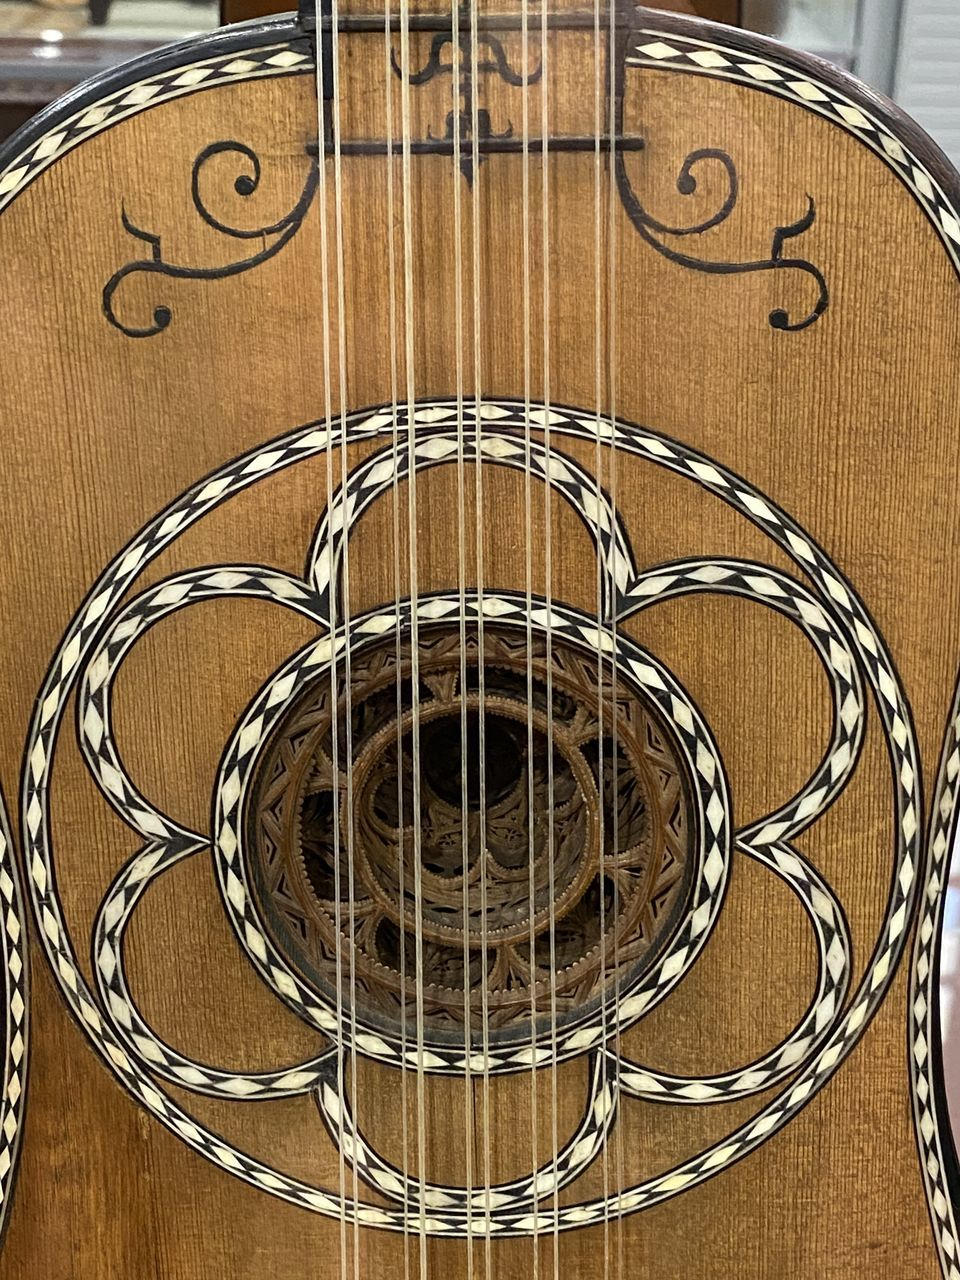 no people, wood - material, brown, indoors, close-up, circle, geometric shape, arts culture and entertainment, musical instrument, pattern, musical equipment, high angle view, music, musical instrument string, shape, string instrument, spiral, skill, guitar, single object